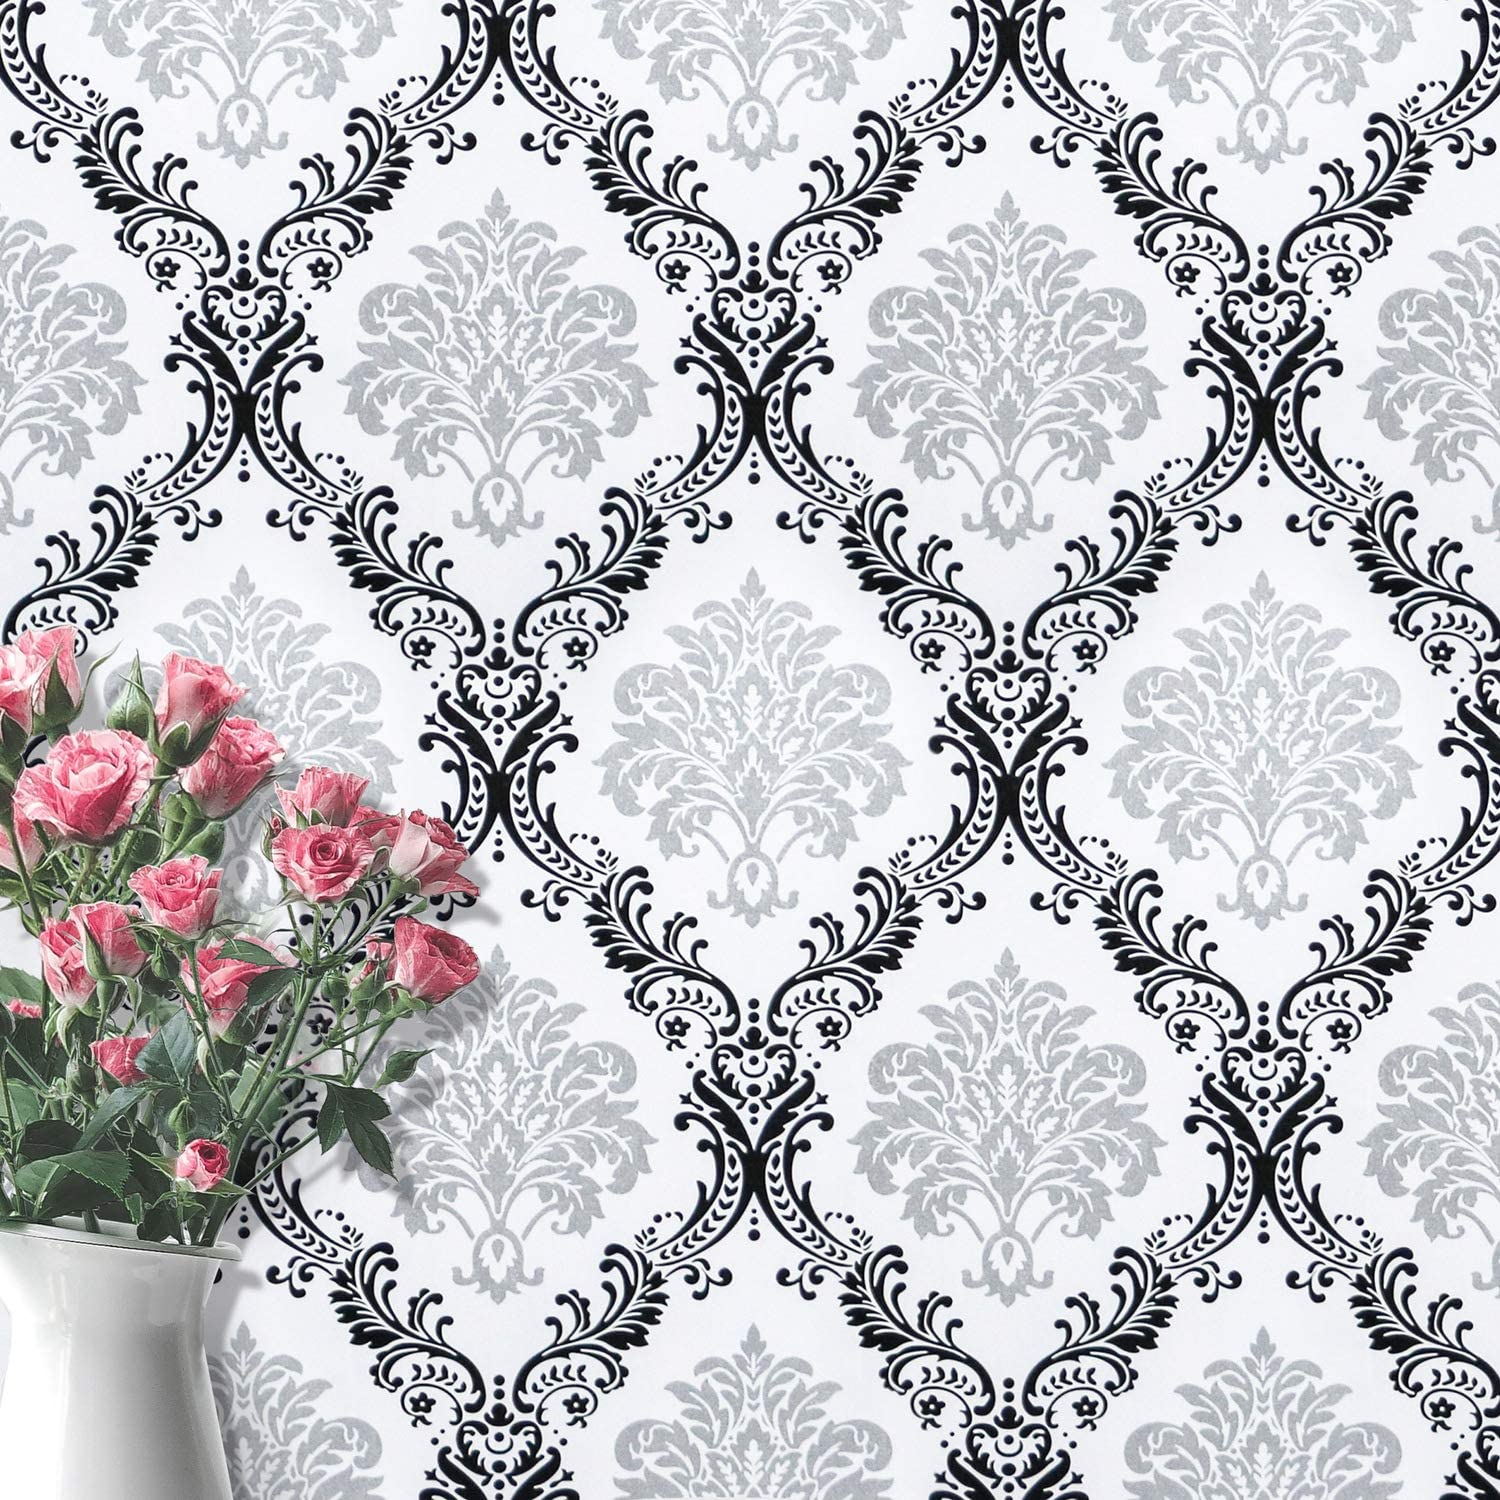 White Black Peel And Stick Wallpaper Removable Contact Paper Decorative Damascus Wall Paper Flower Wallpaper Wall Covering Embossed Self Adhesive Wallpaper Shelf Drawer Liner Vinyl Roll17 7 X78 7 Amazon Com